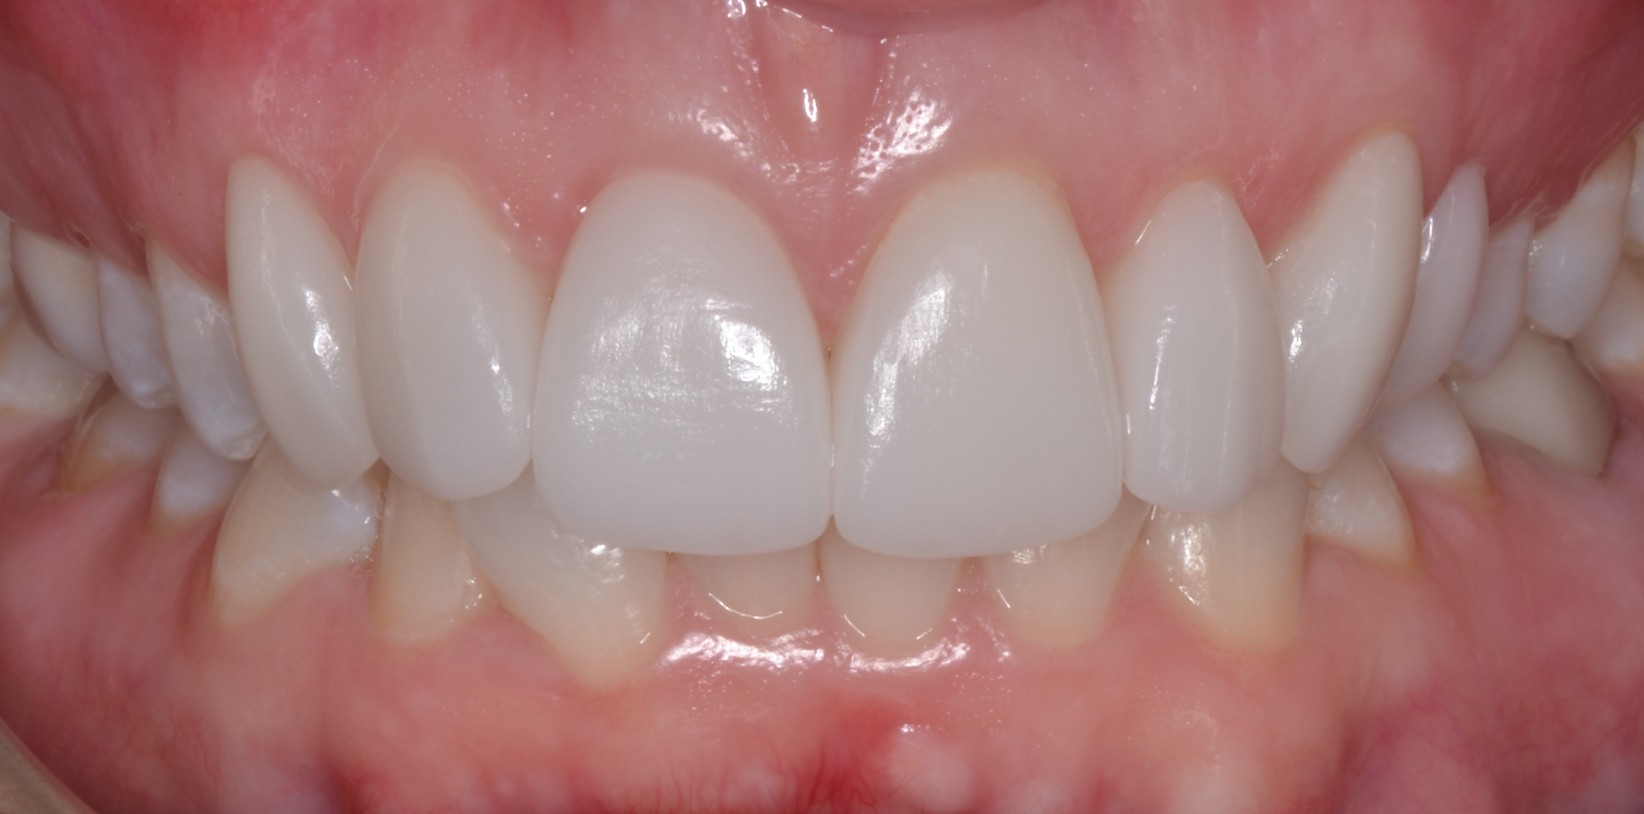 Teeth Griding Dental Crowns After Louisville Kentucky